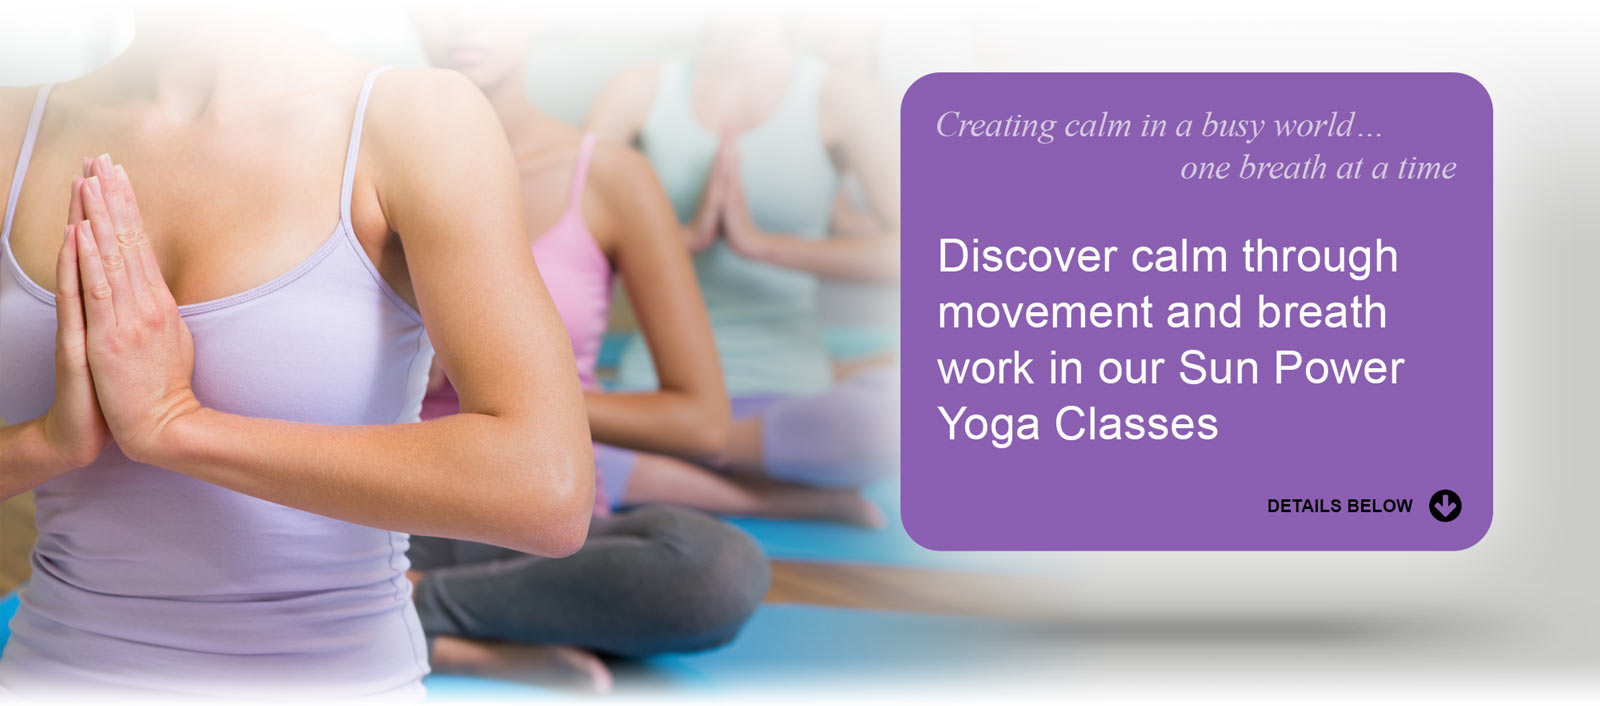 Unite Yoga Classes For Beginners Enthusiasts